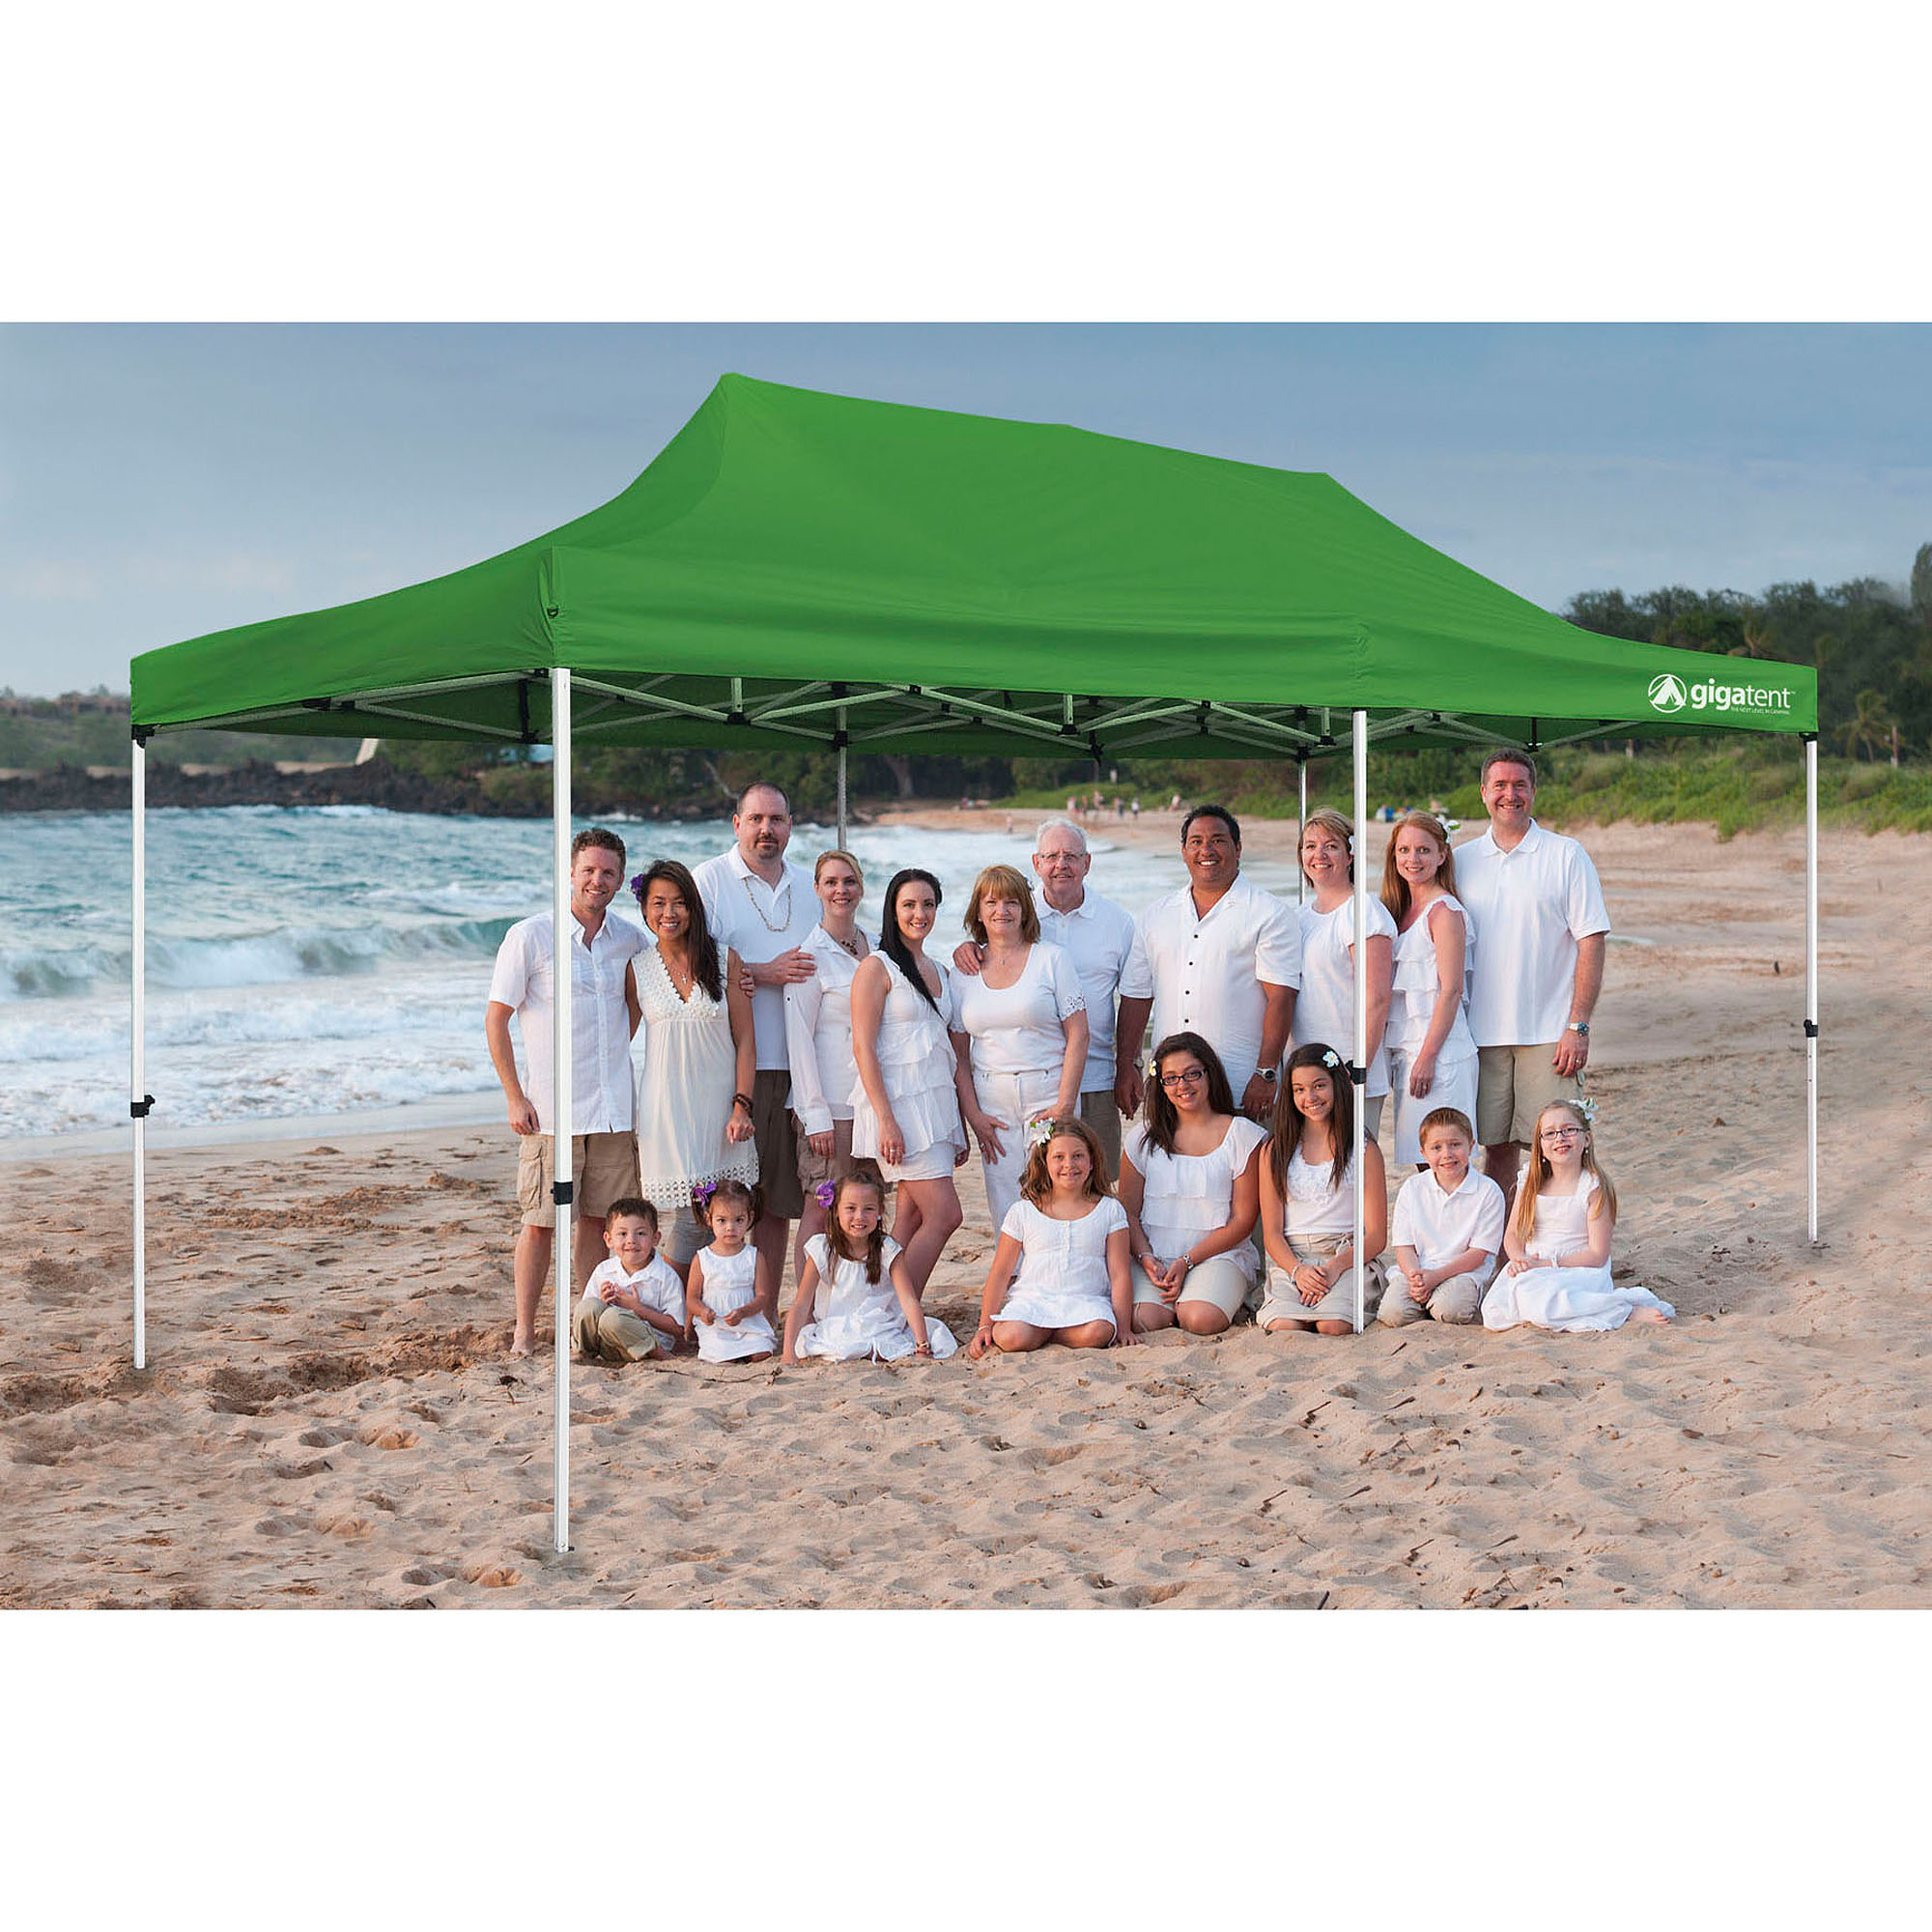 GigaTent The Party Tent 10' x 20' Canopy, Green